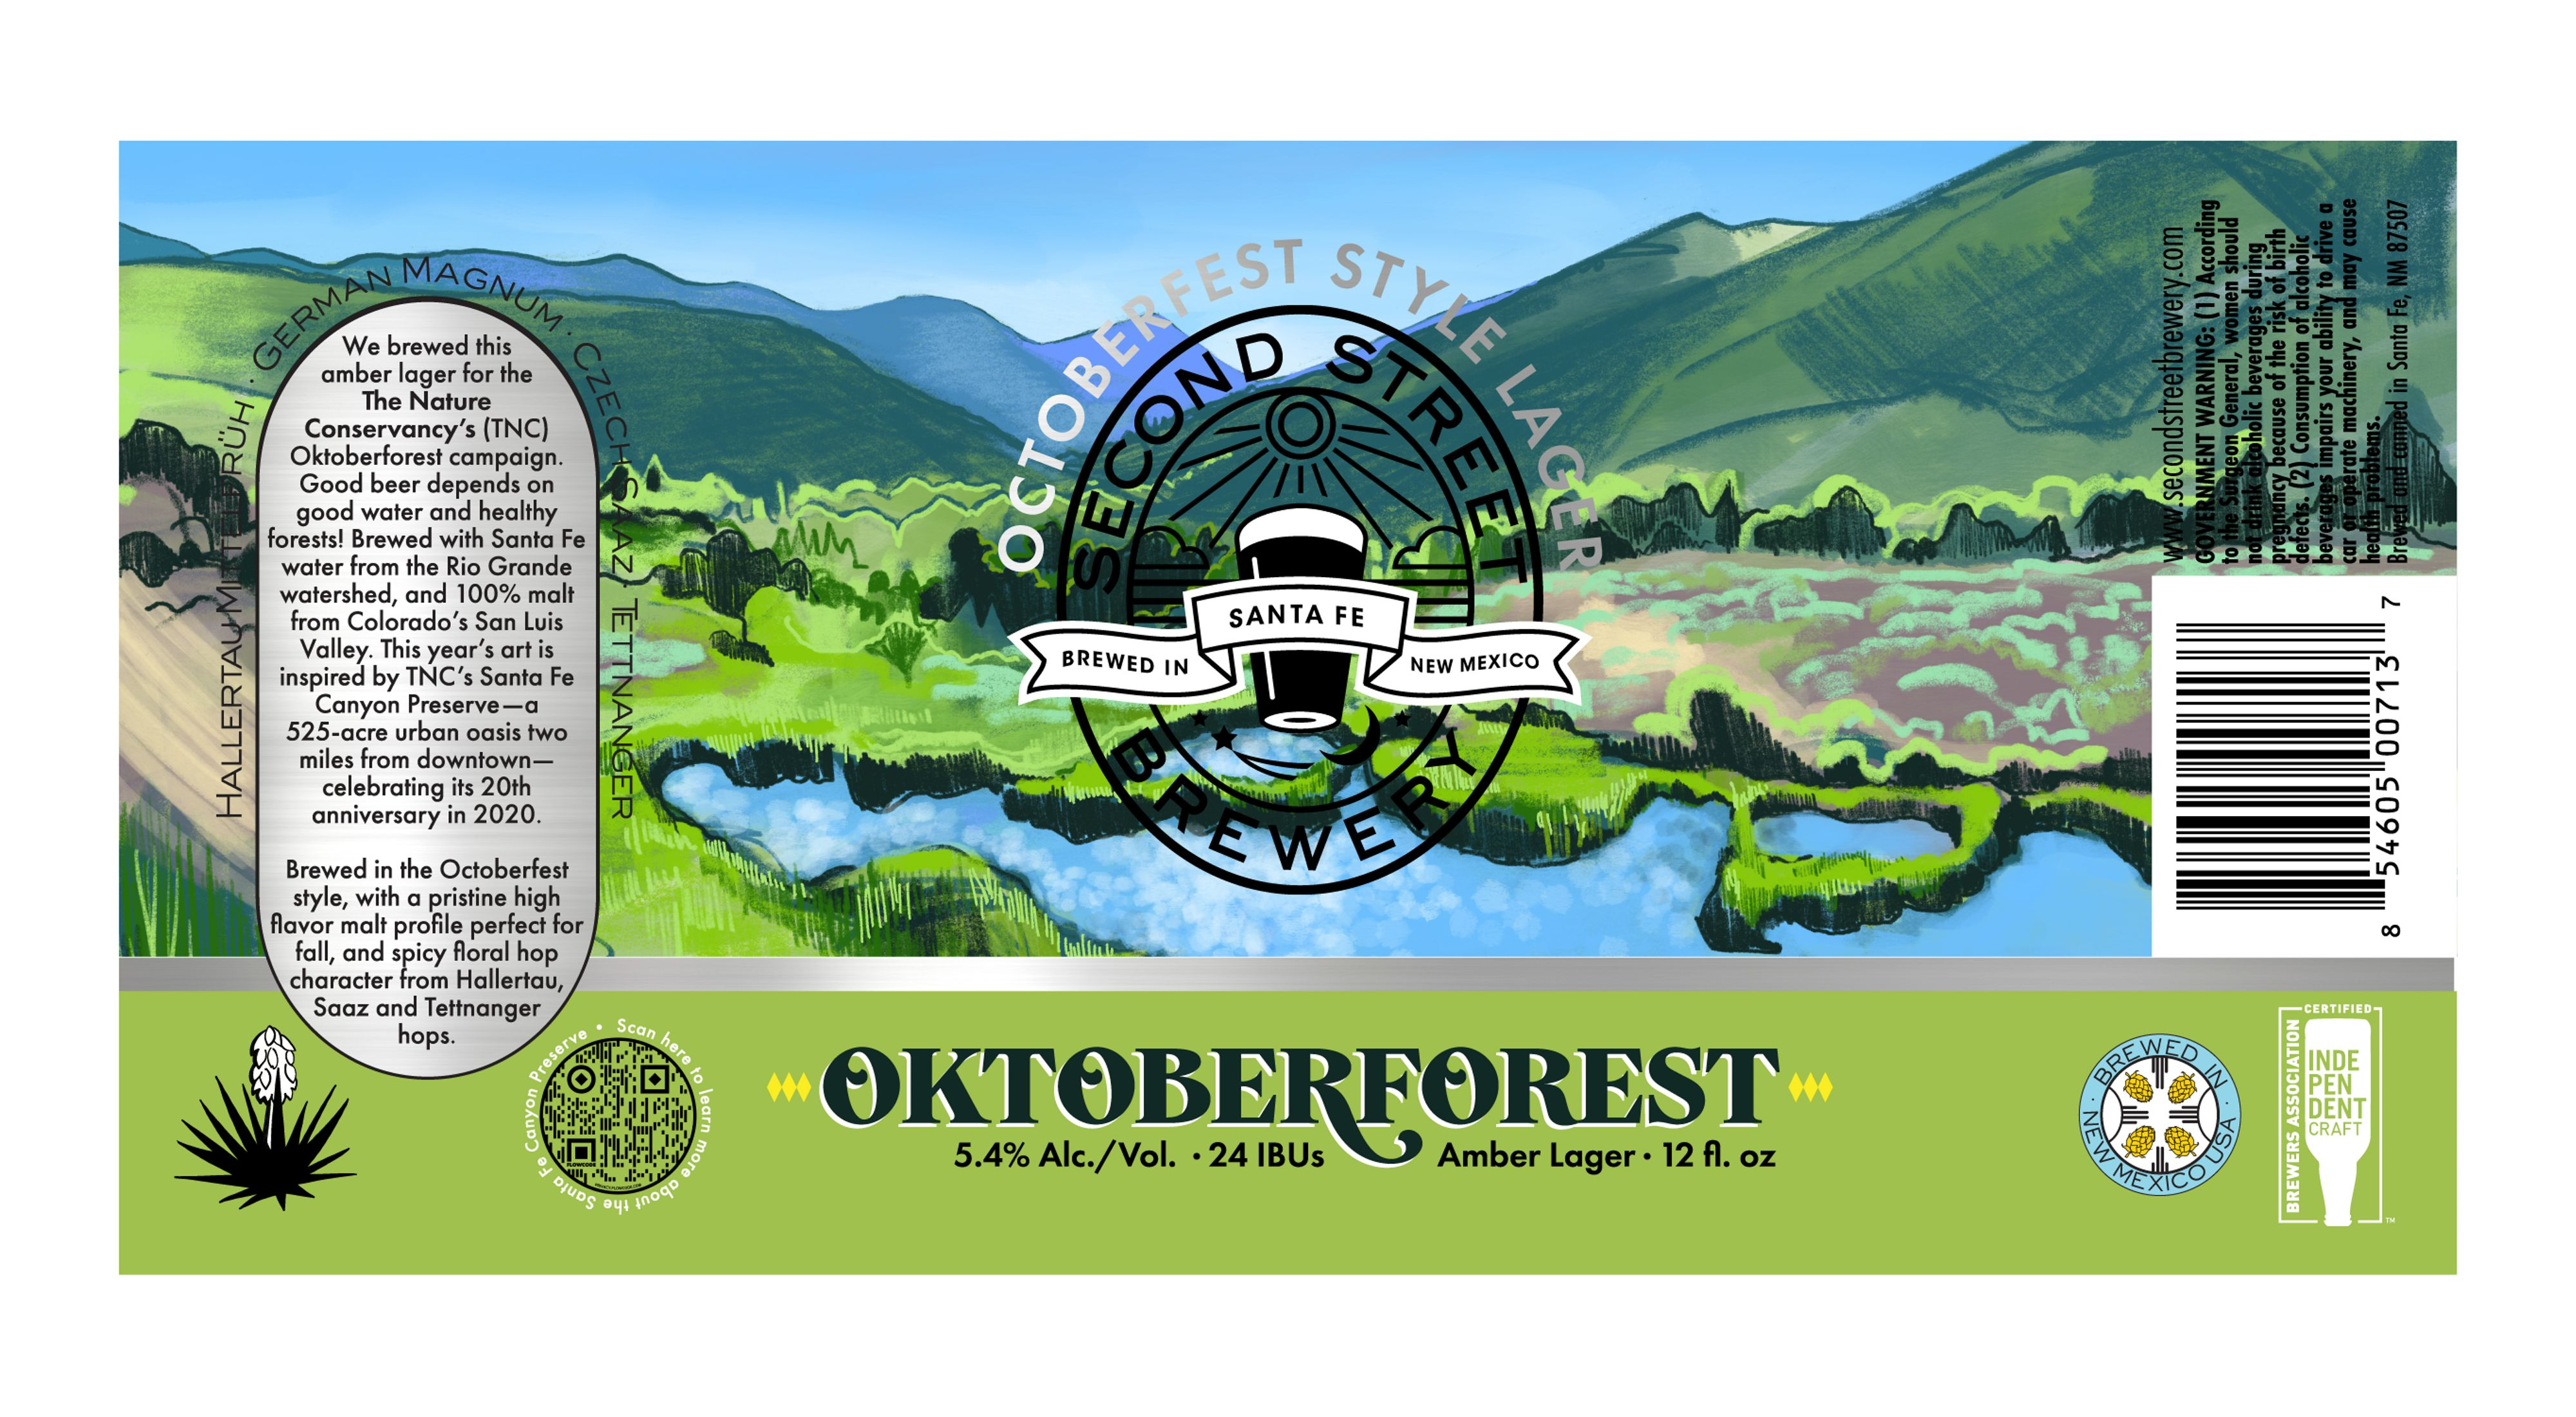 Colorful illustration of waterway surrounded by trees, with mountains in the background and Second Street Brewery logo superimposed.